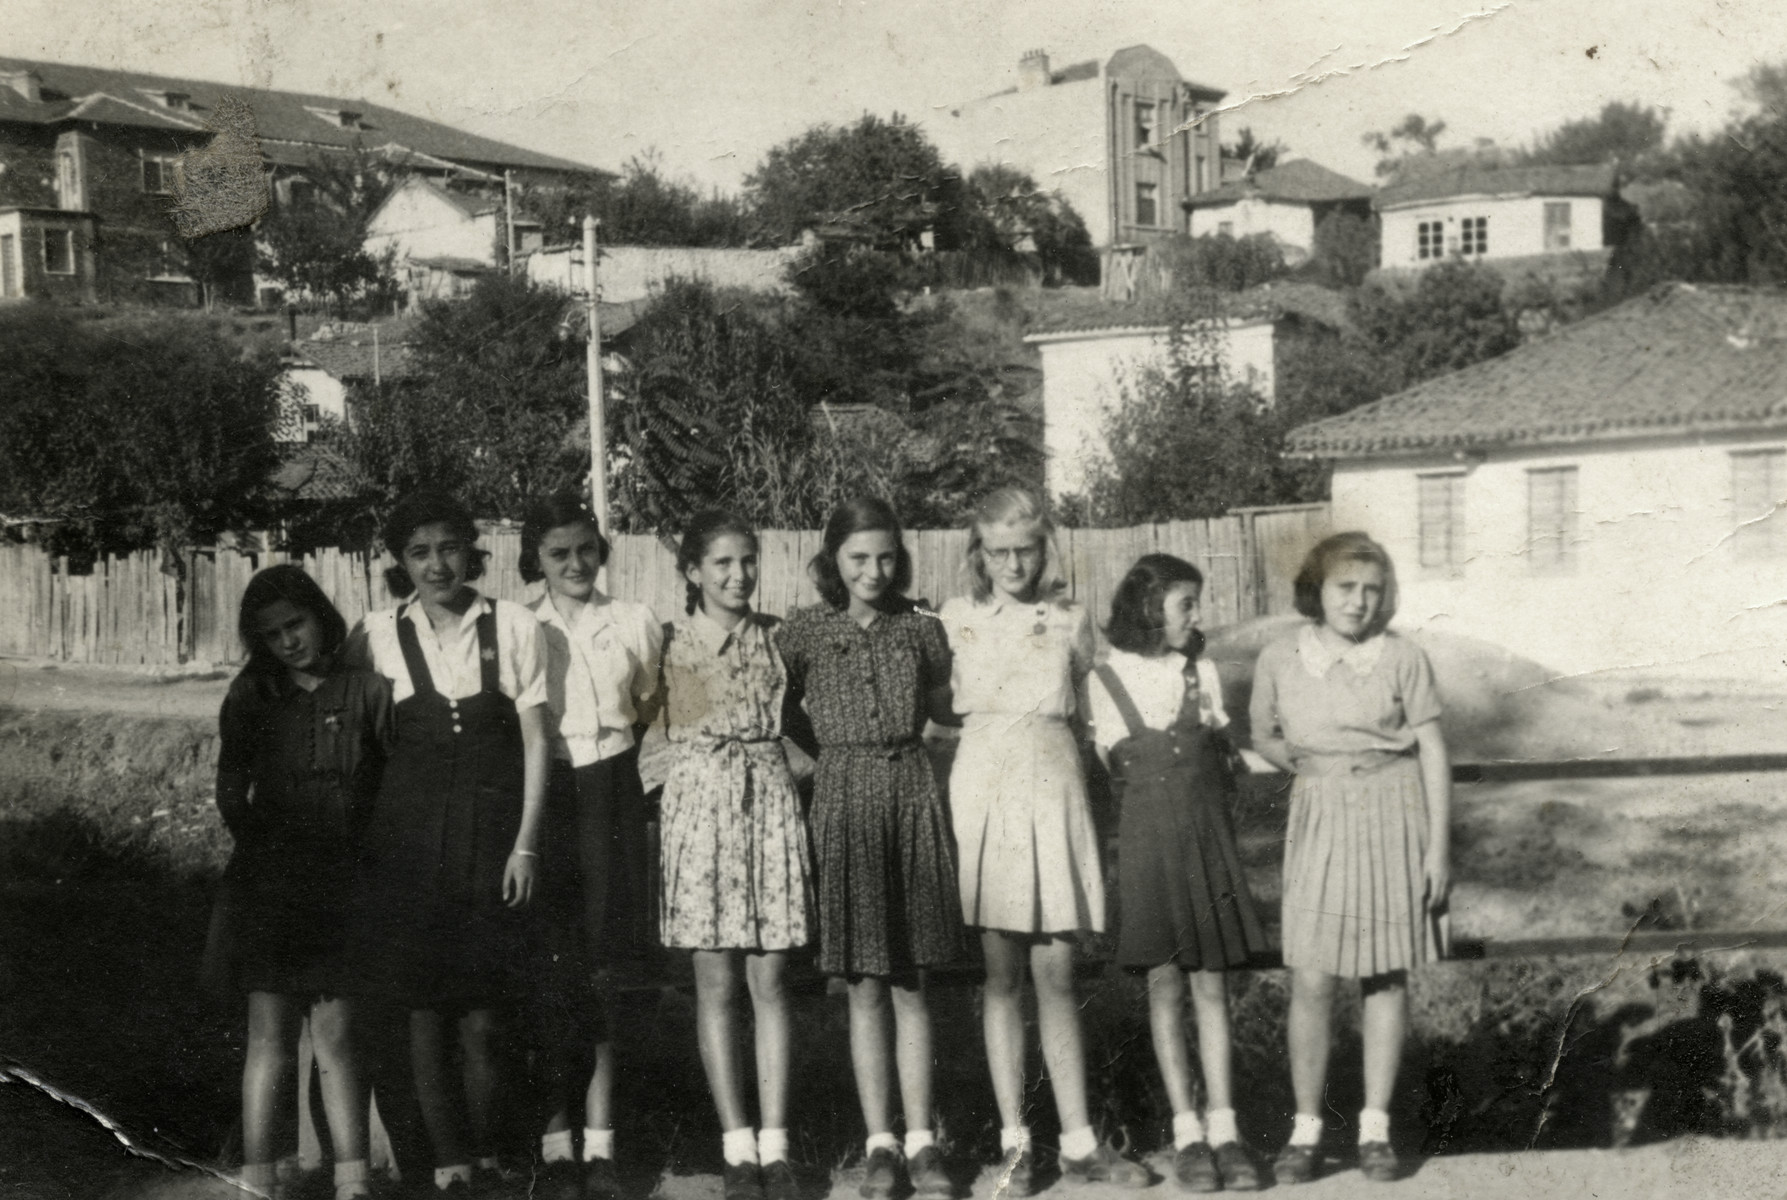 Group portrait of Jewish school girls outdoors in Haskovo; all are wearing Jewish stars.  Reine Behar is pictured third from the right.